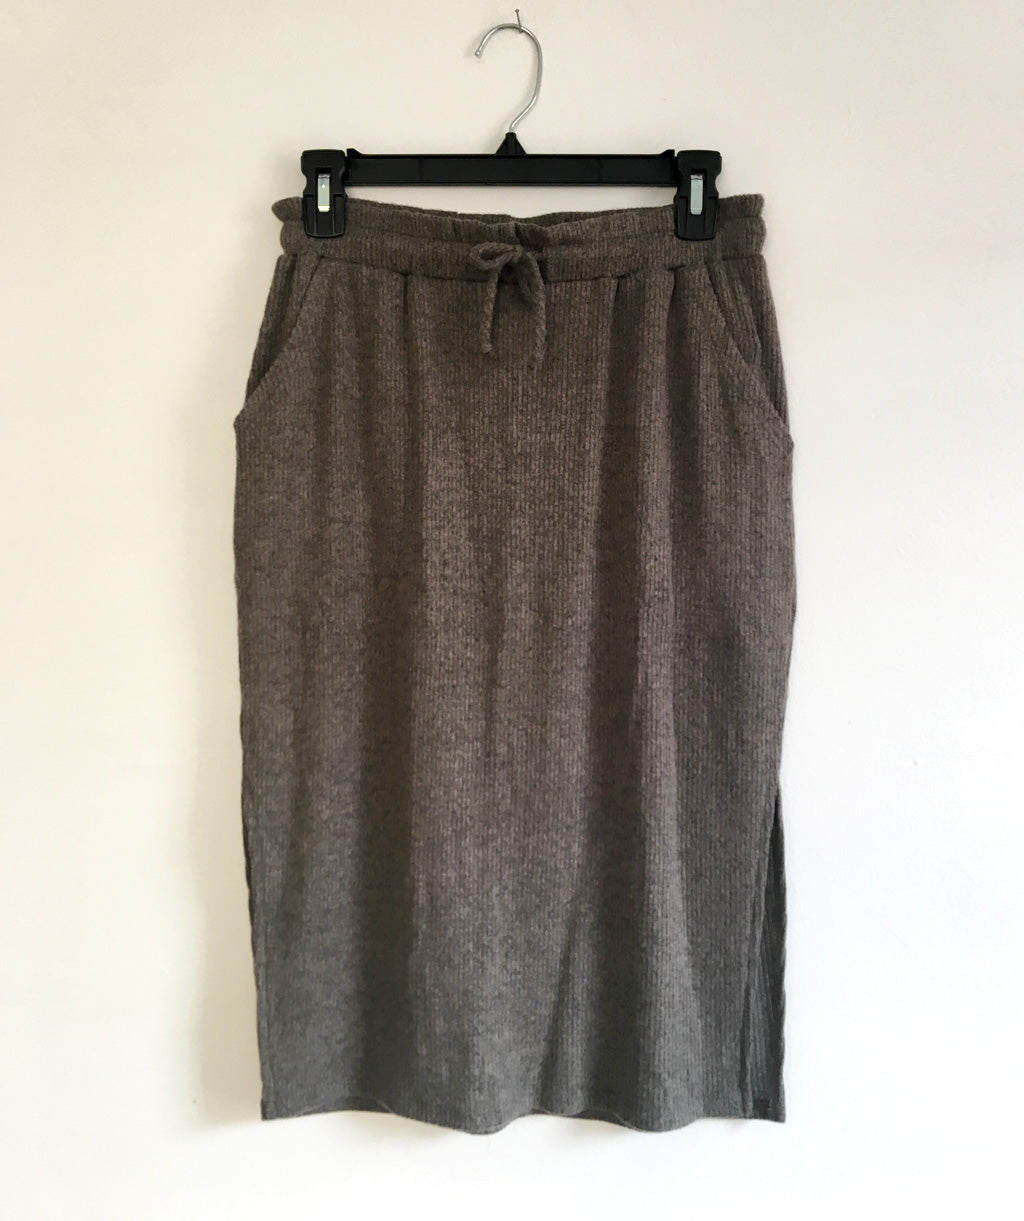 CITY sweater knit skirt in Dark Sage<br/>(Less than perfect)